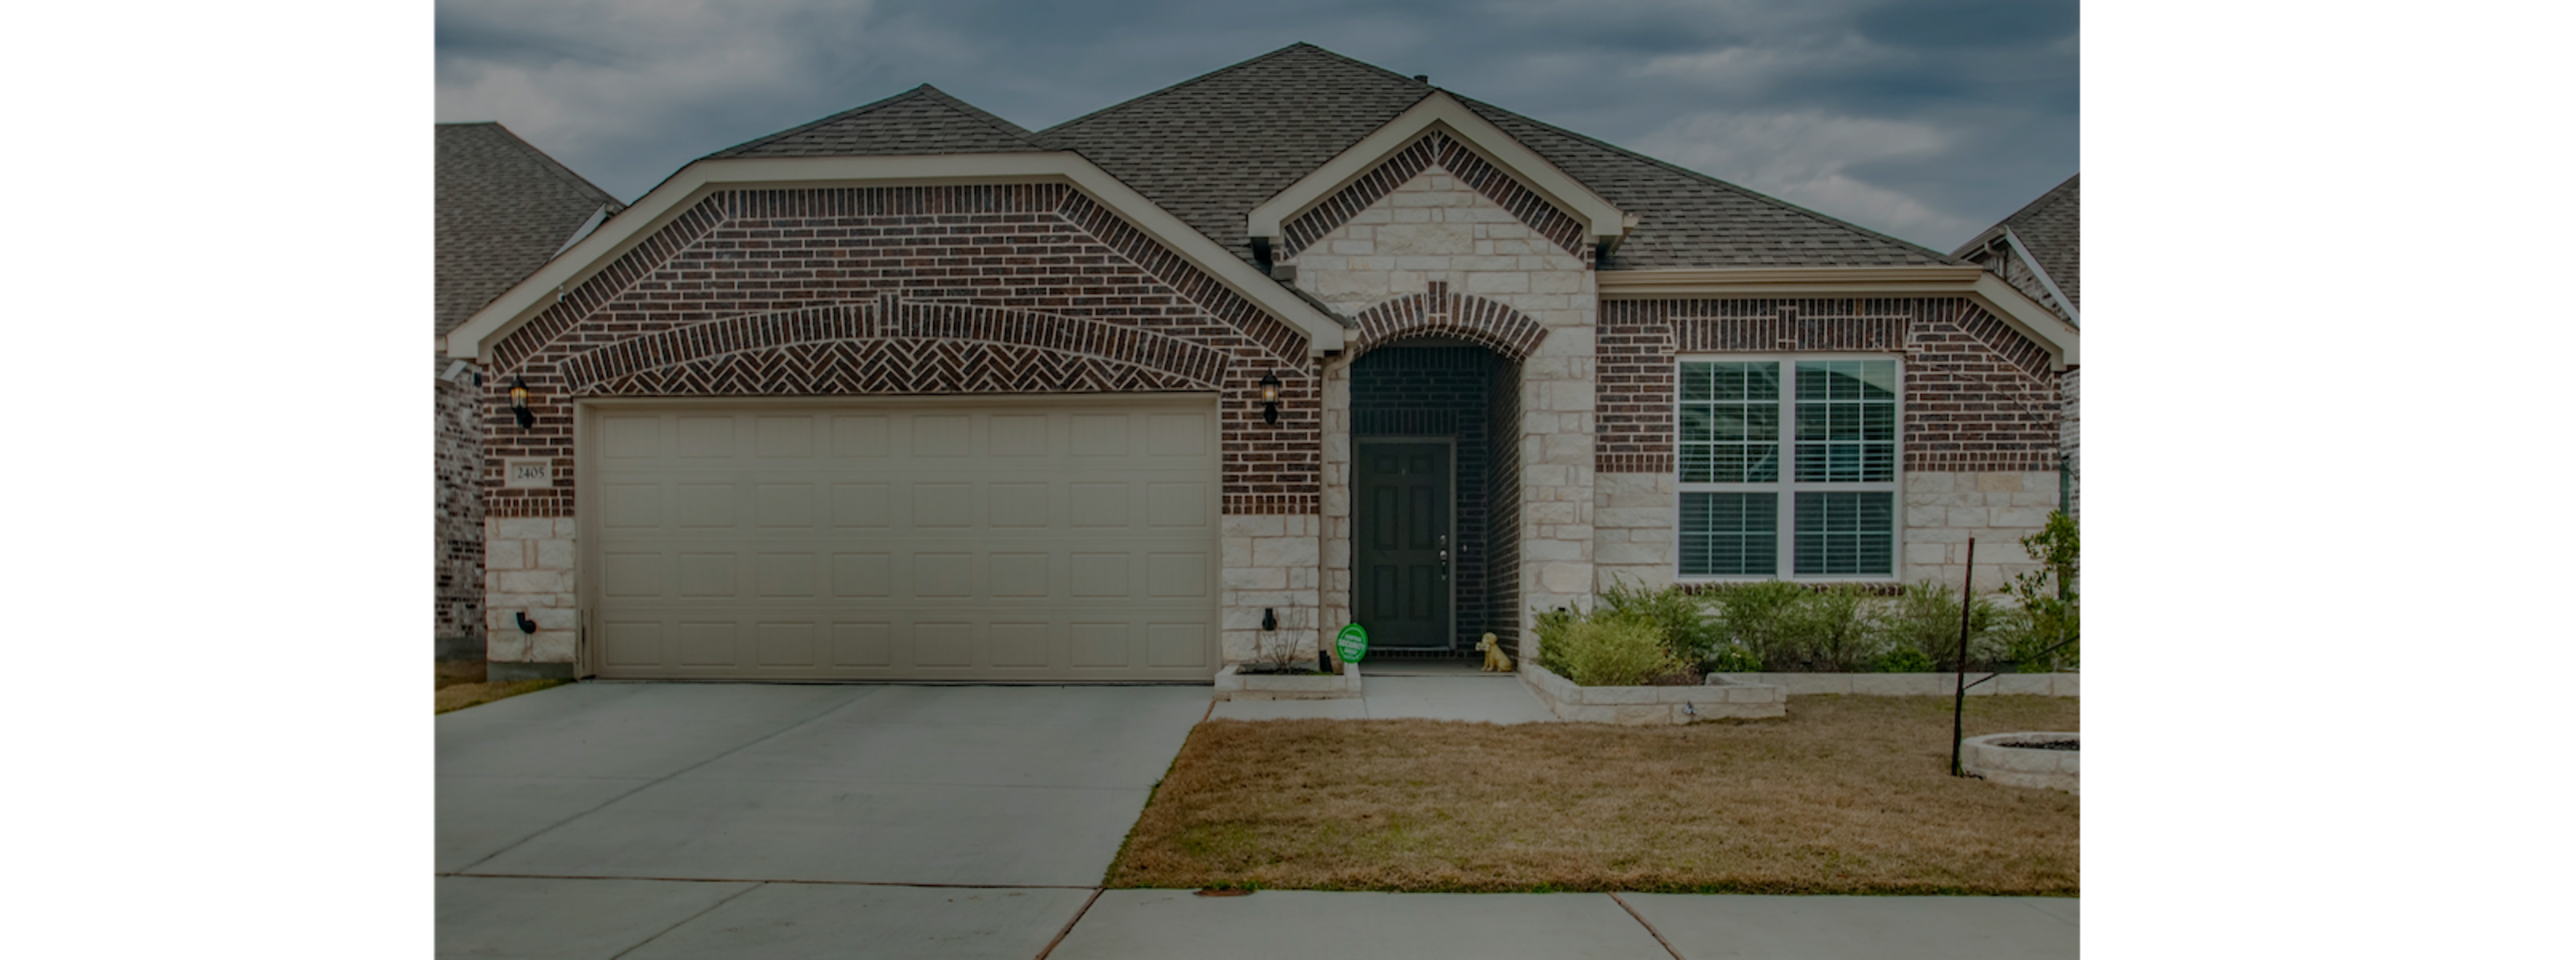 2-Year Old Pulte Home in Little Elm, TX